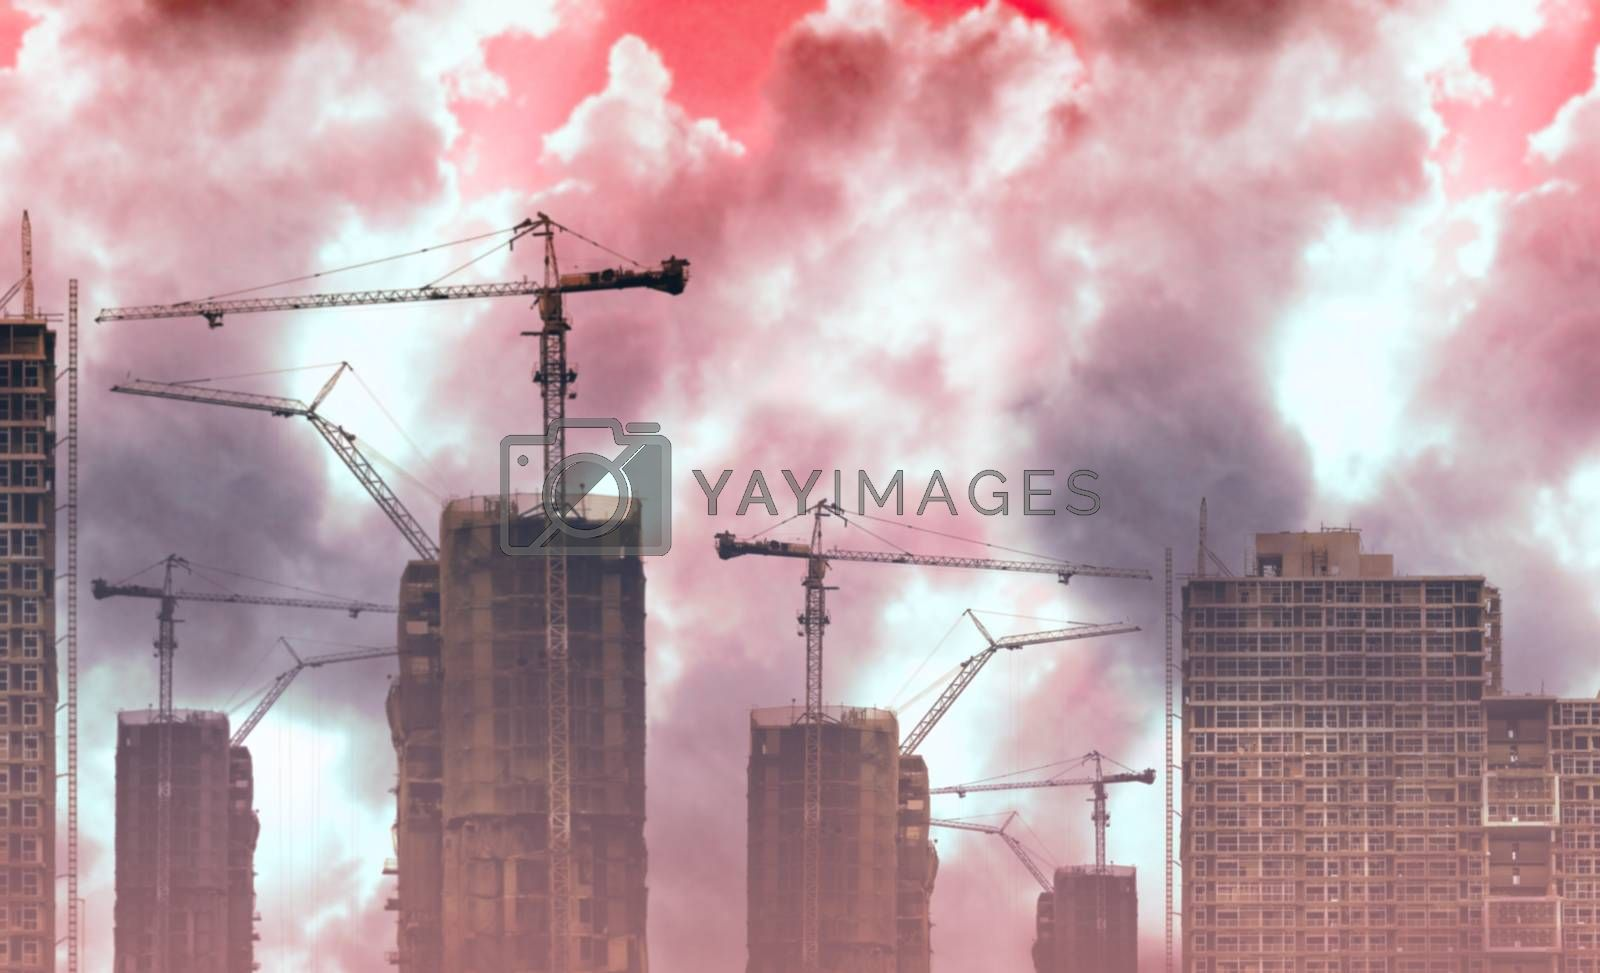 Royalty free image of Abstract construction site with smoke and dust pollution background by pixbox77